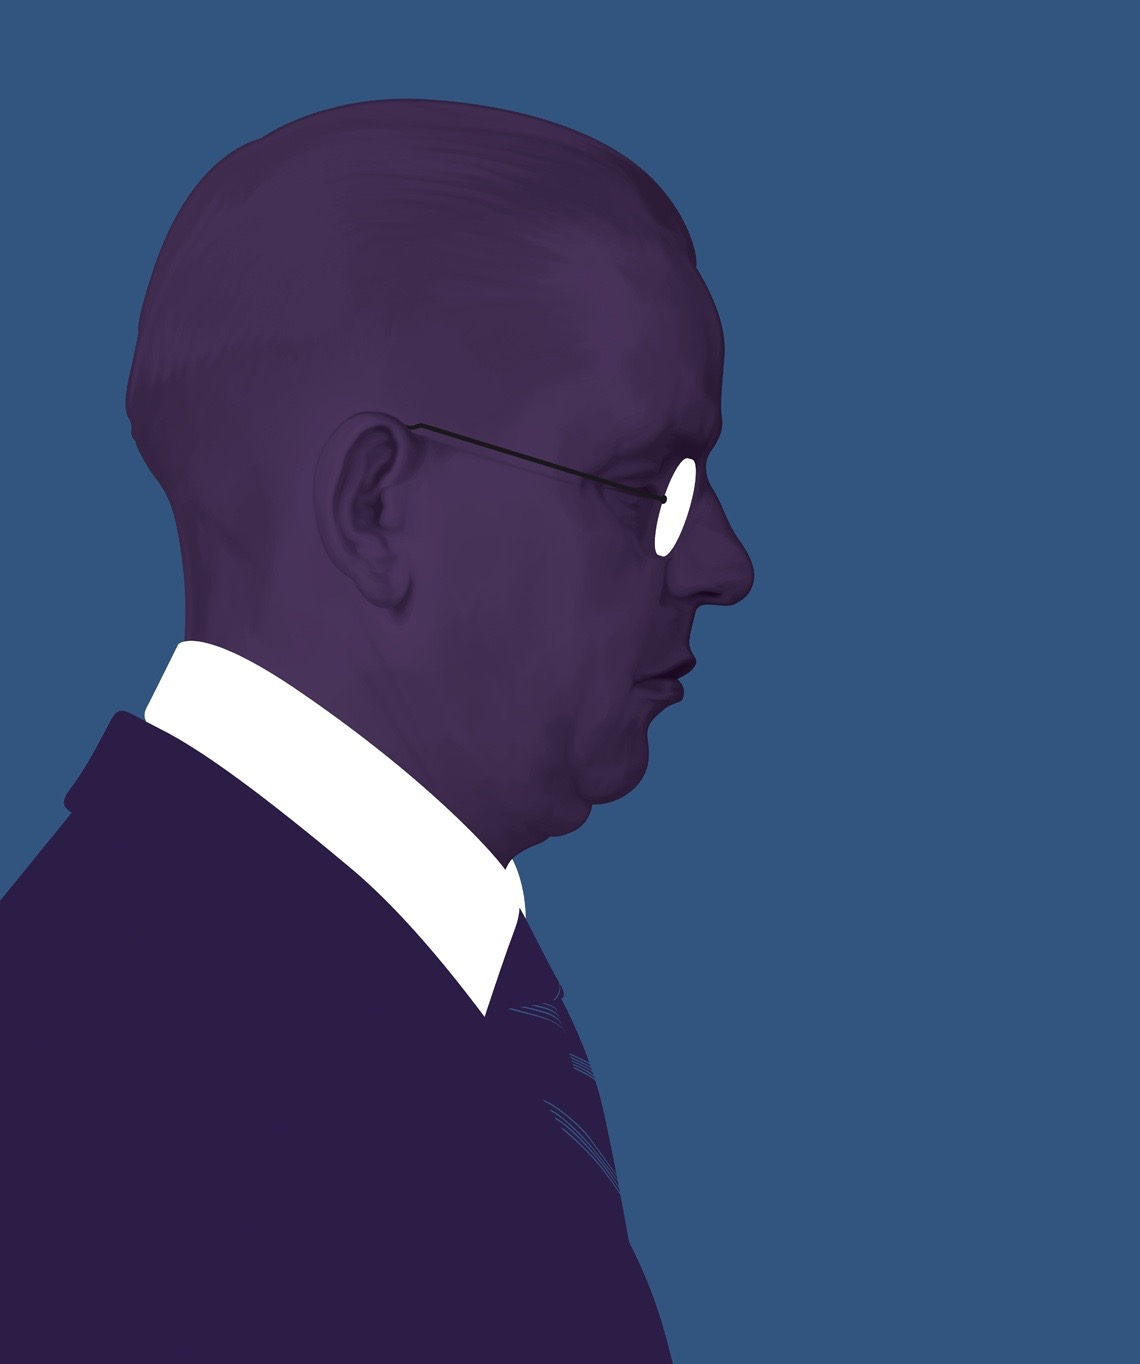 illustration, illustrations, illustrator, illustrators, man, men, glasses, balding, suit, profile, side view, monochromatic, serious, expression